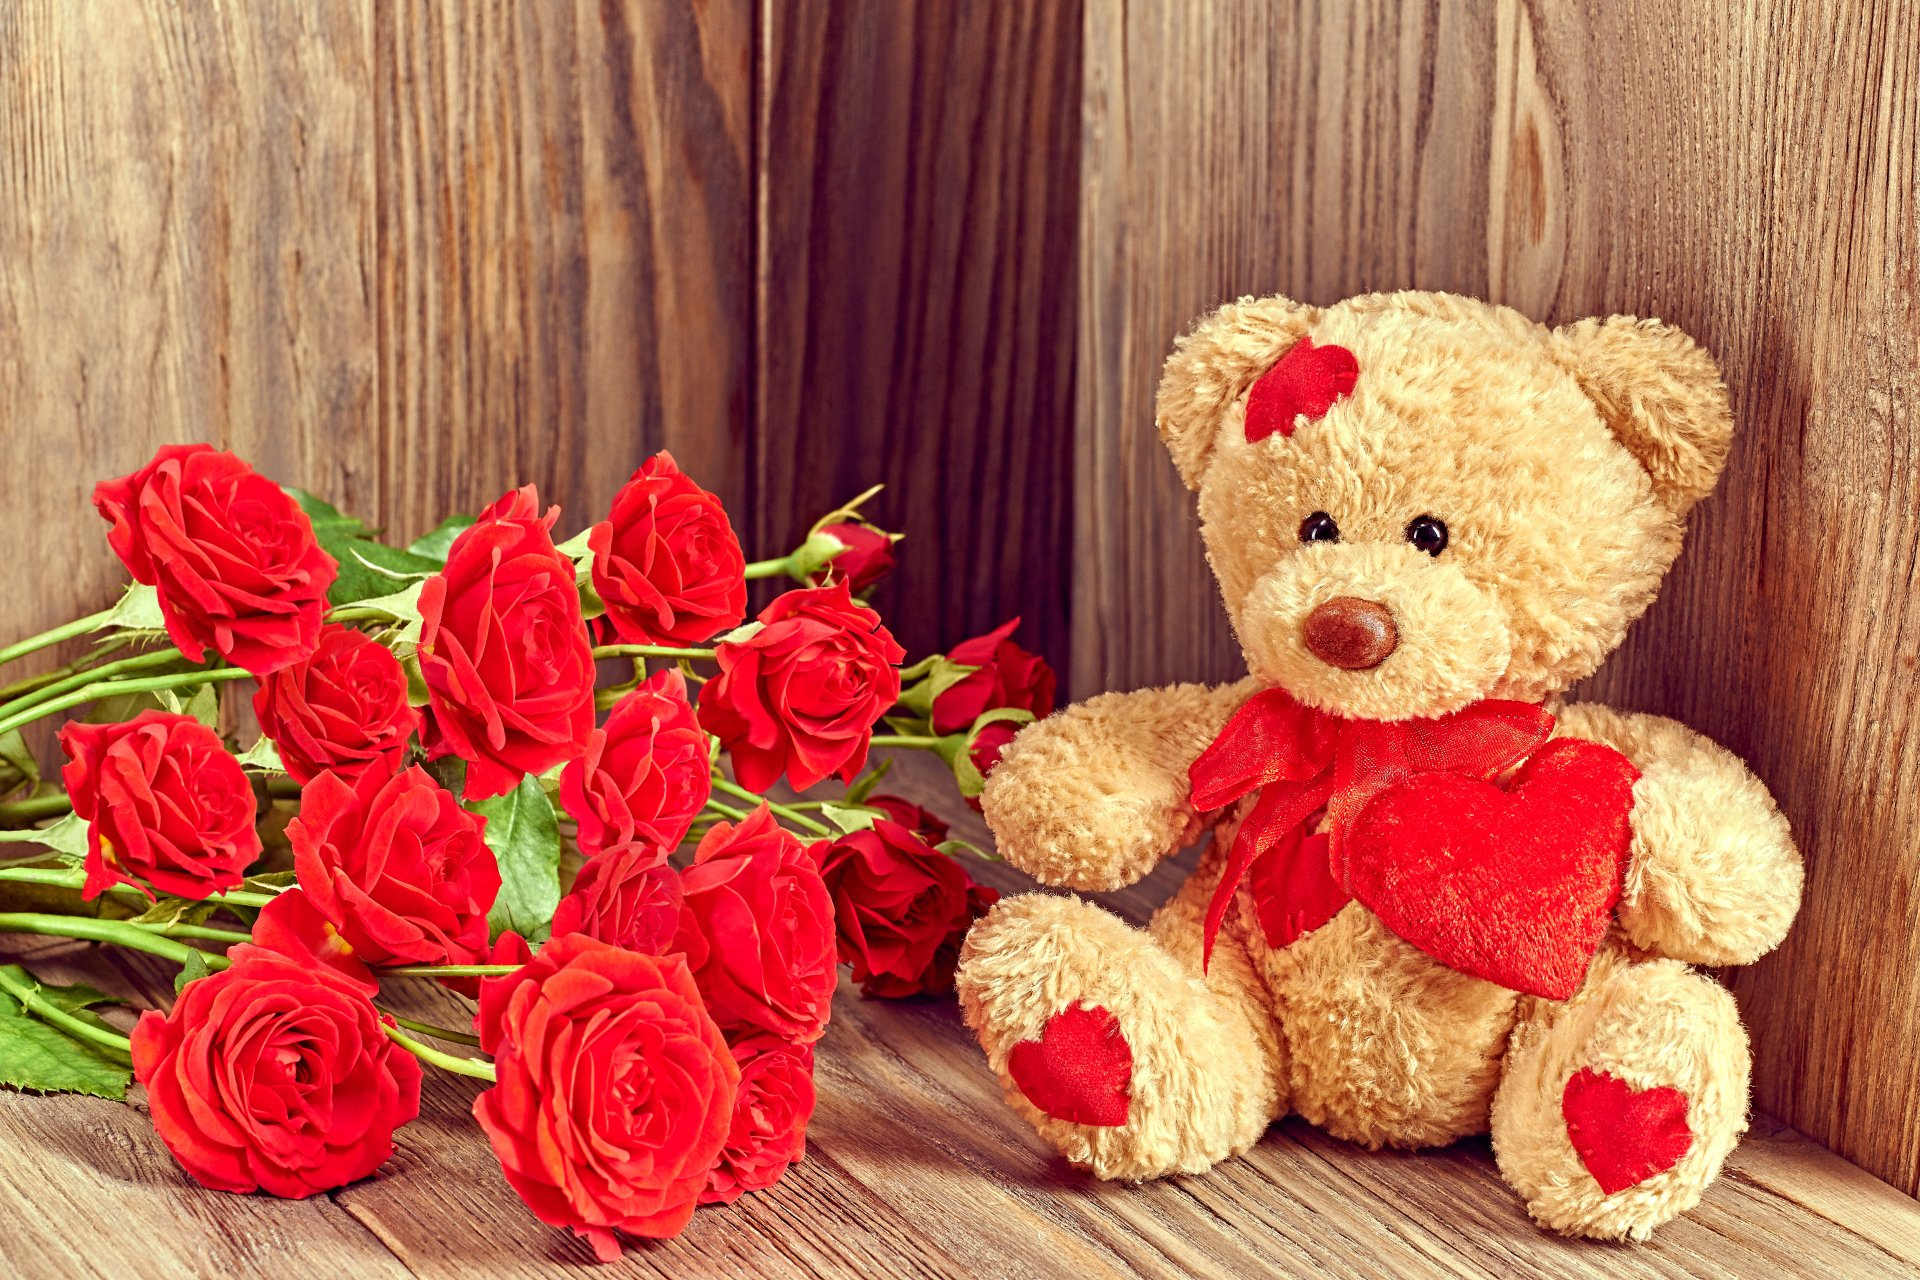 Holiday - Valentine's Day  Teddy Bear Love Flower Red Rose Rose Wallpaper